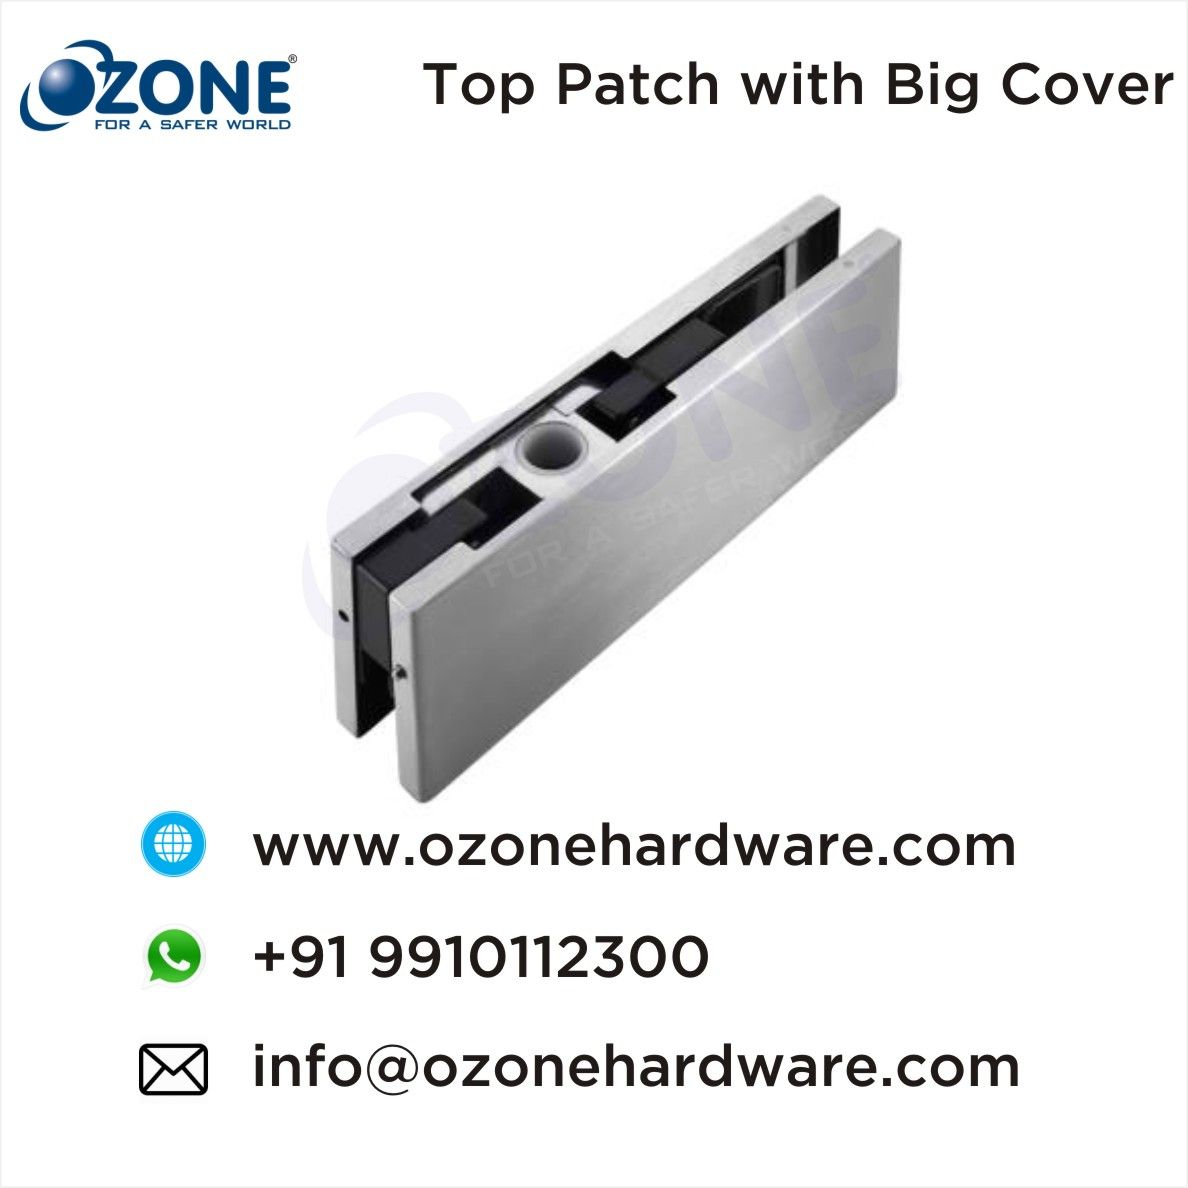 Top Patch With Big Cover Size Of Ocfh 105 Hydraulic Patch For Glass Doors Concealed Door Closers Hydraulic Patches Cover Size Hydraulic Systems